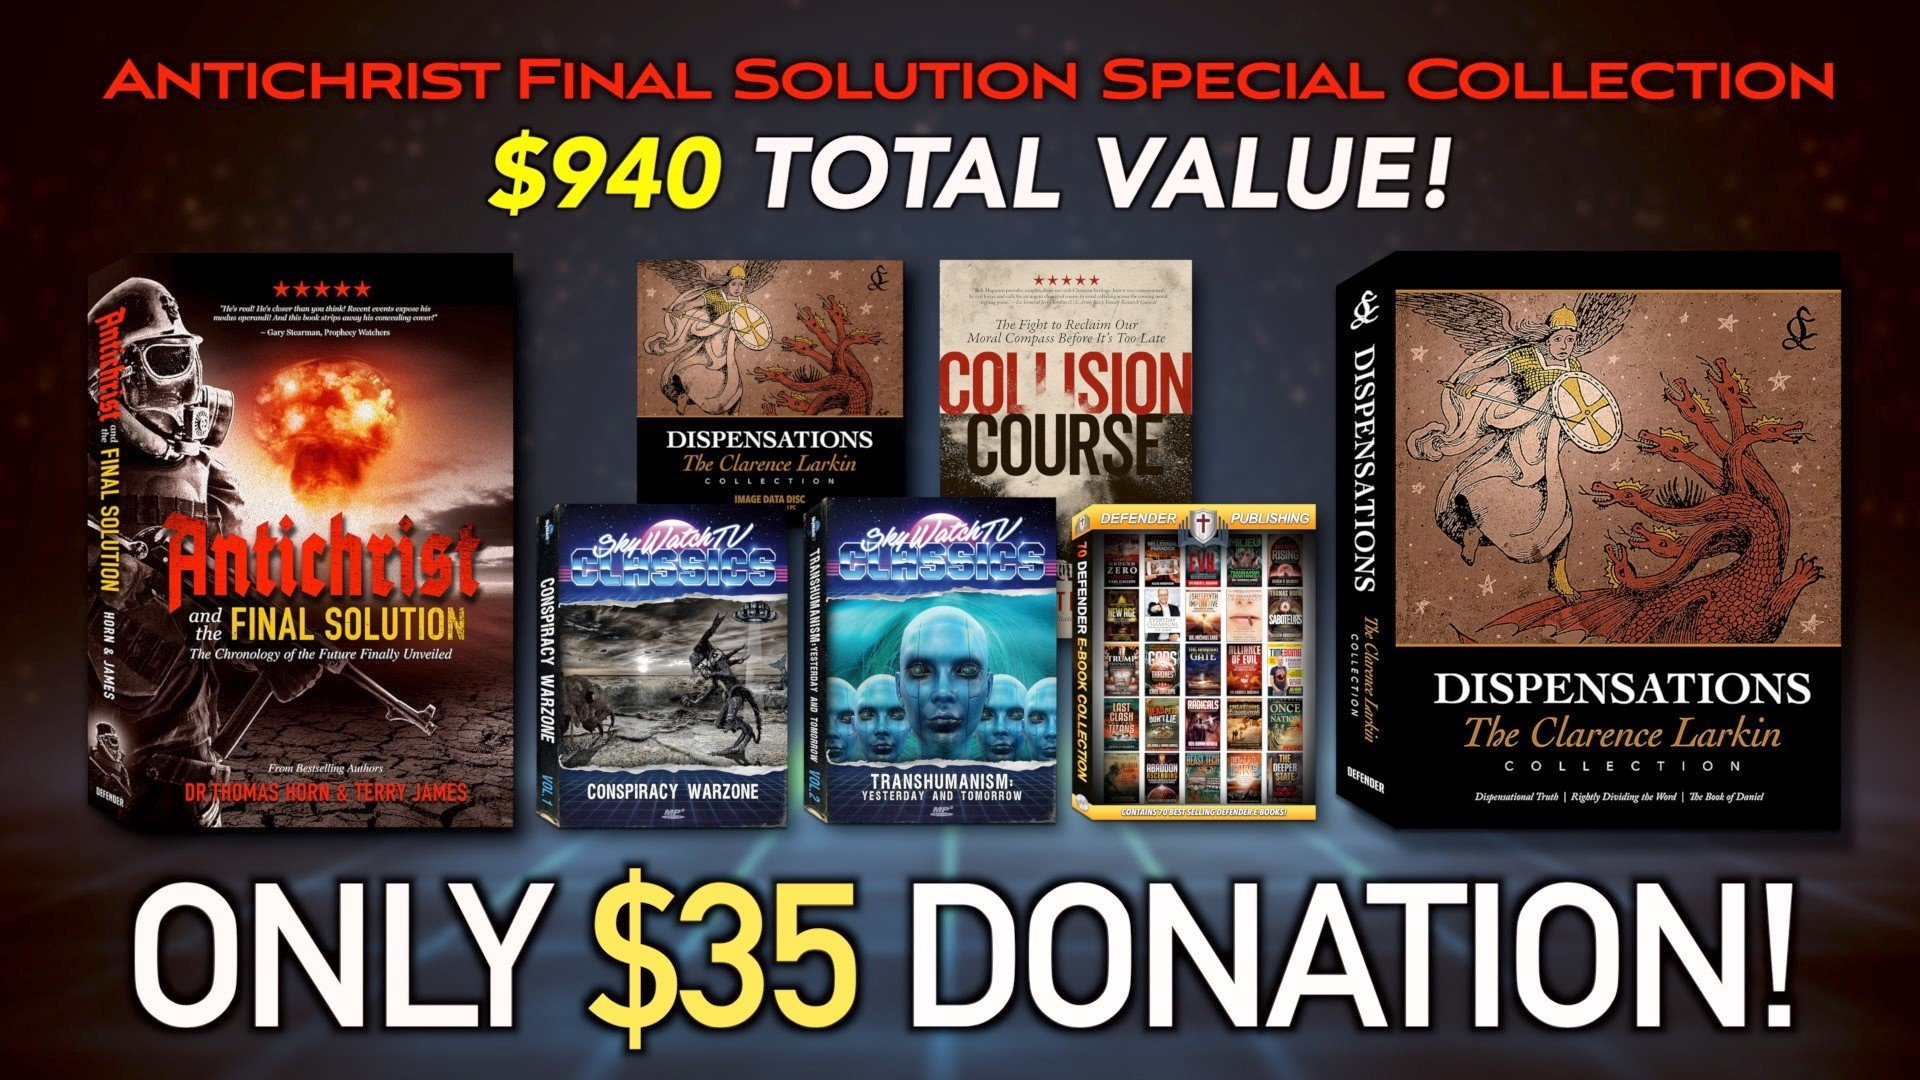 OVER $900.00 IN FREE MERCHANDISE WITH THE #1 BOOK OF THE YEAR! LIMITED TIME SUPER GIVEAWAY!